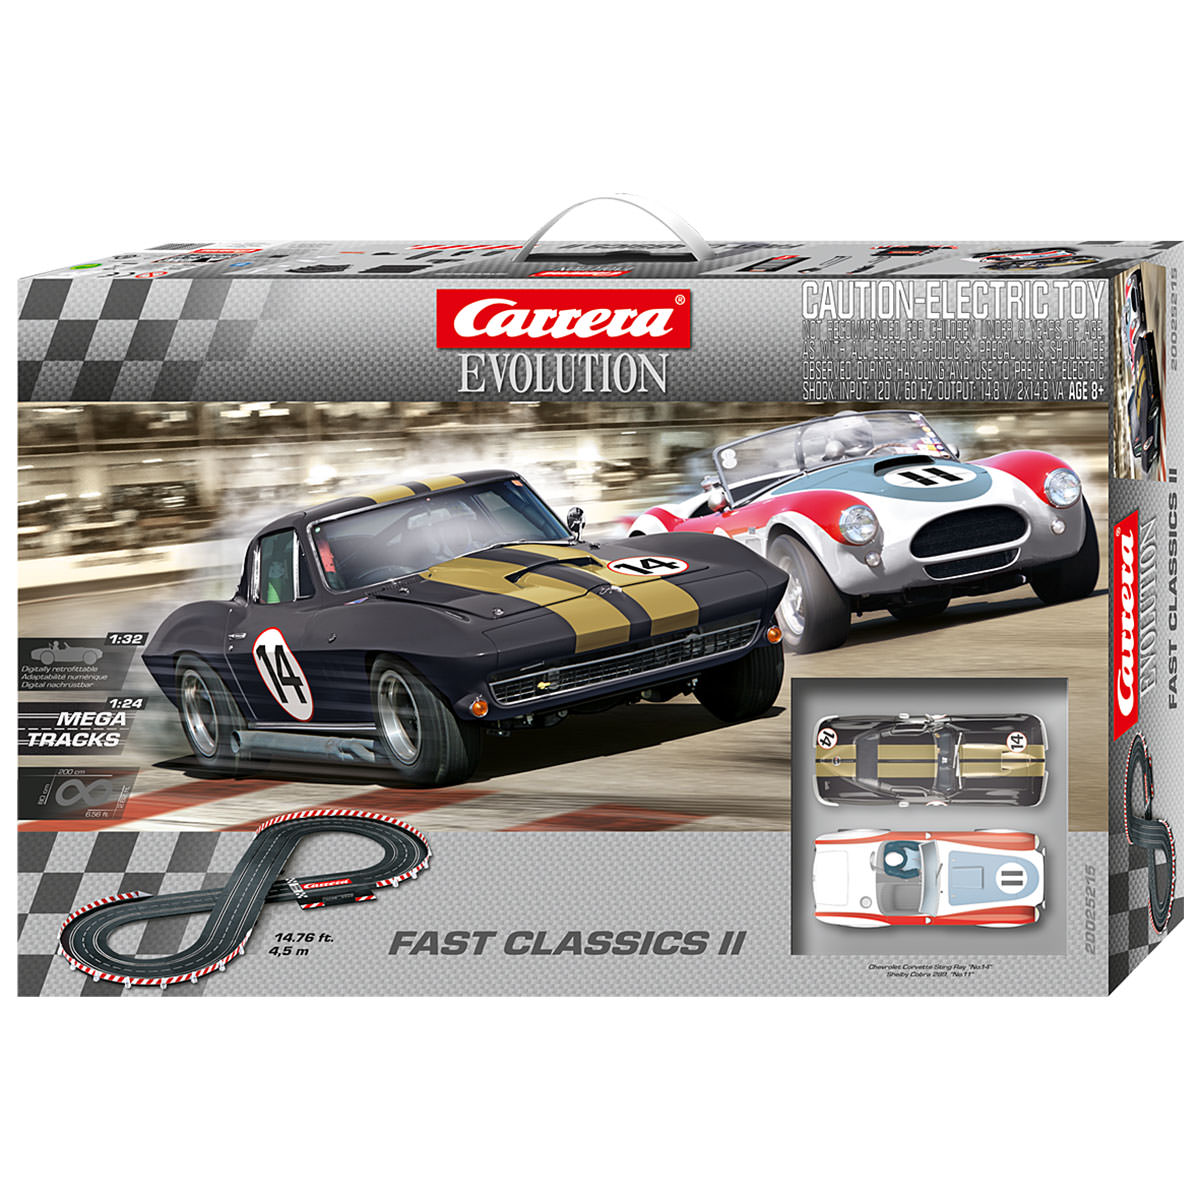 carrera evolution fast classic ii slot racing set at hobby. Black Bedroom Furniture Sets. Home Design Ideas